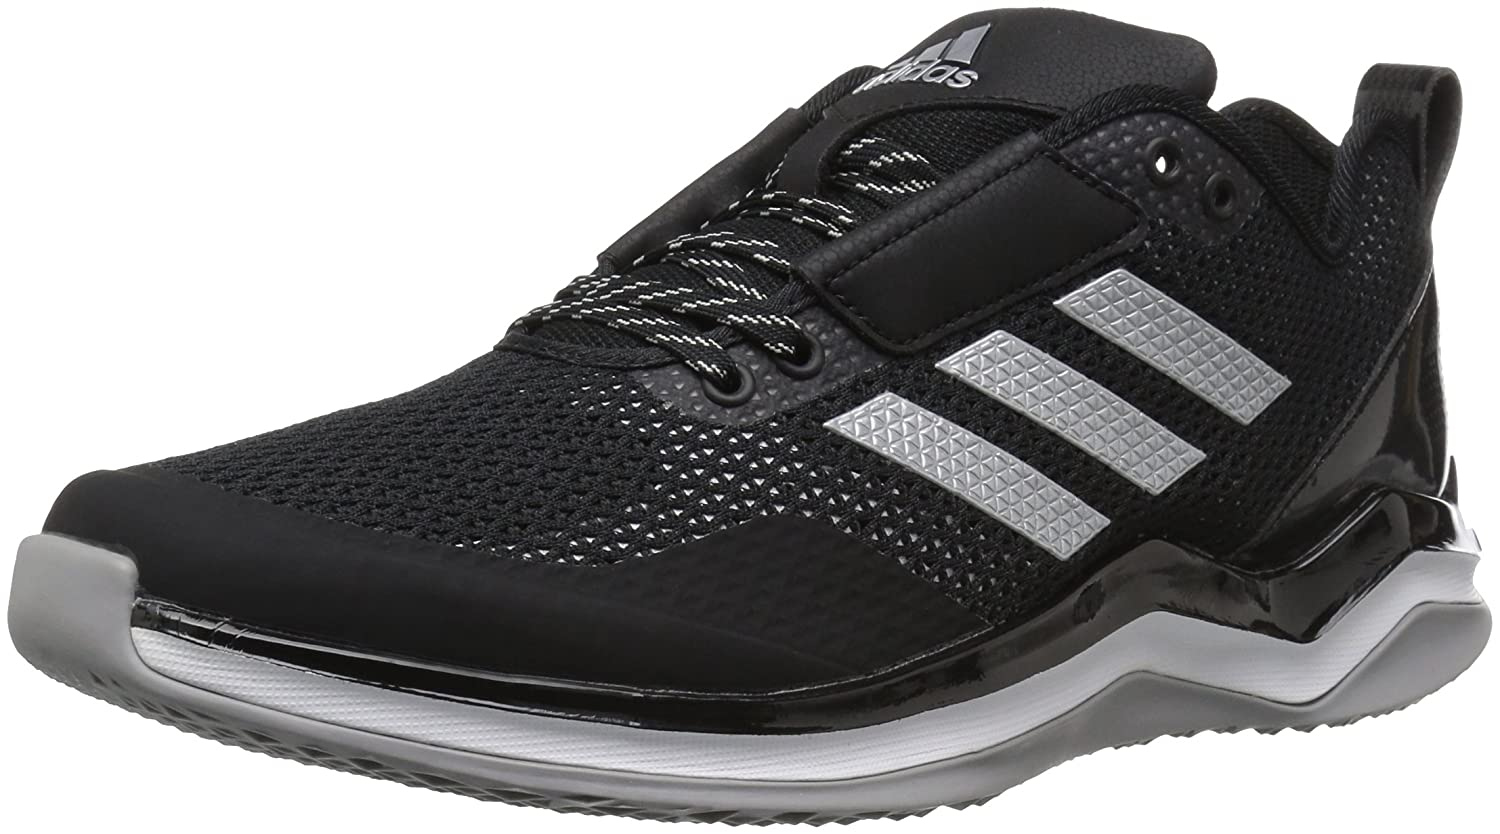 official photos 2cafd ce170 Amazon.com   adidas Men s Speed Trainer 3 Shoes   Fitness   Cross-Training